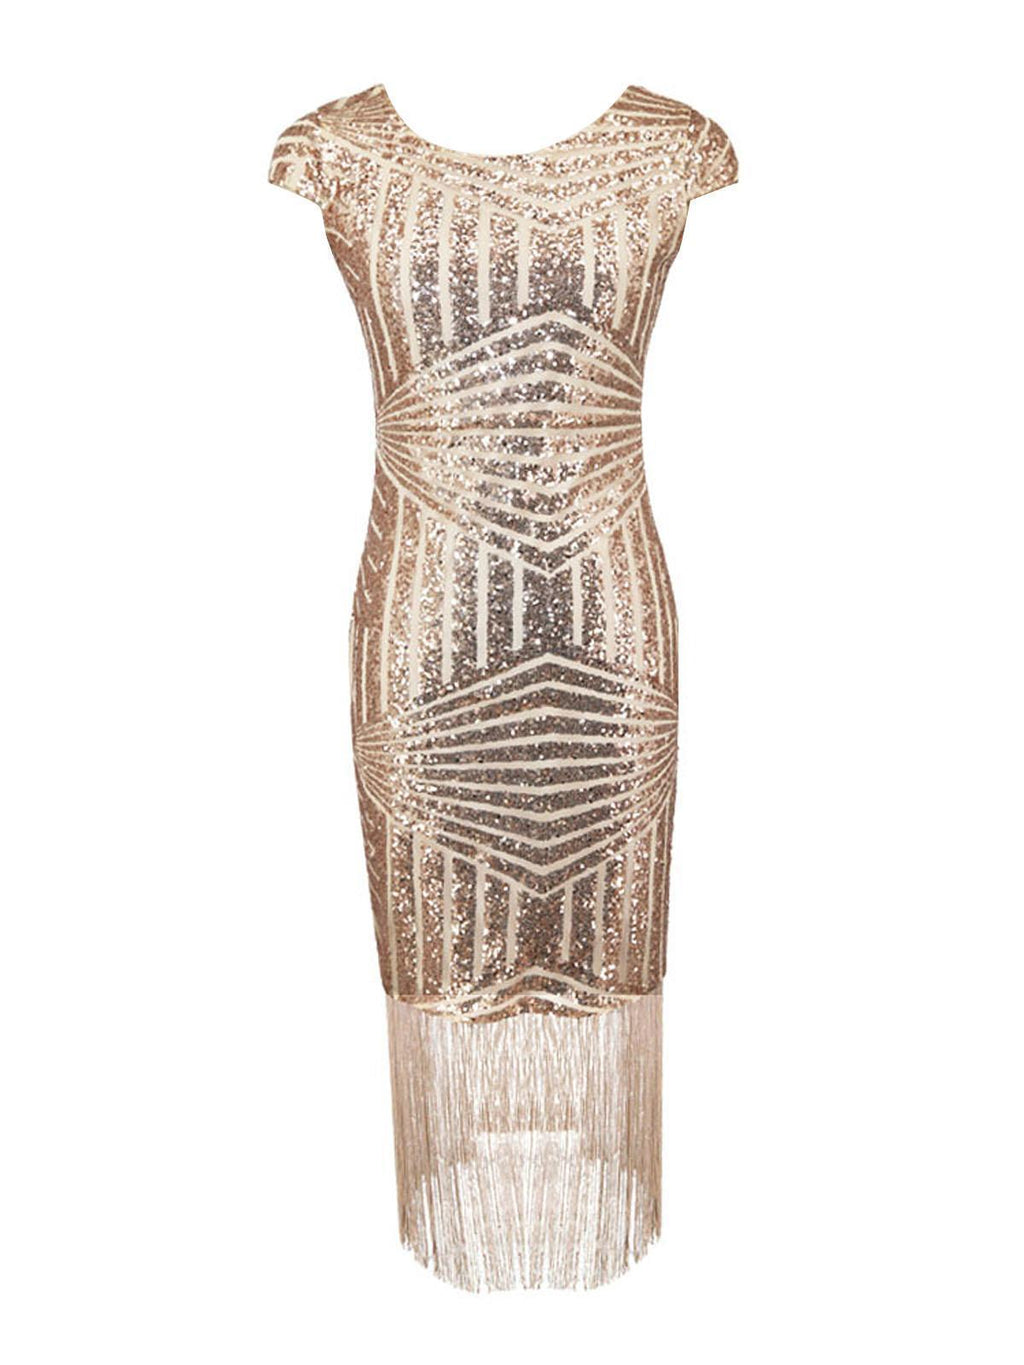 Pink 1920s Sequin Fringed Dress